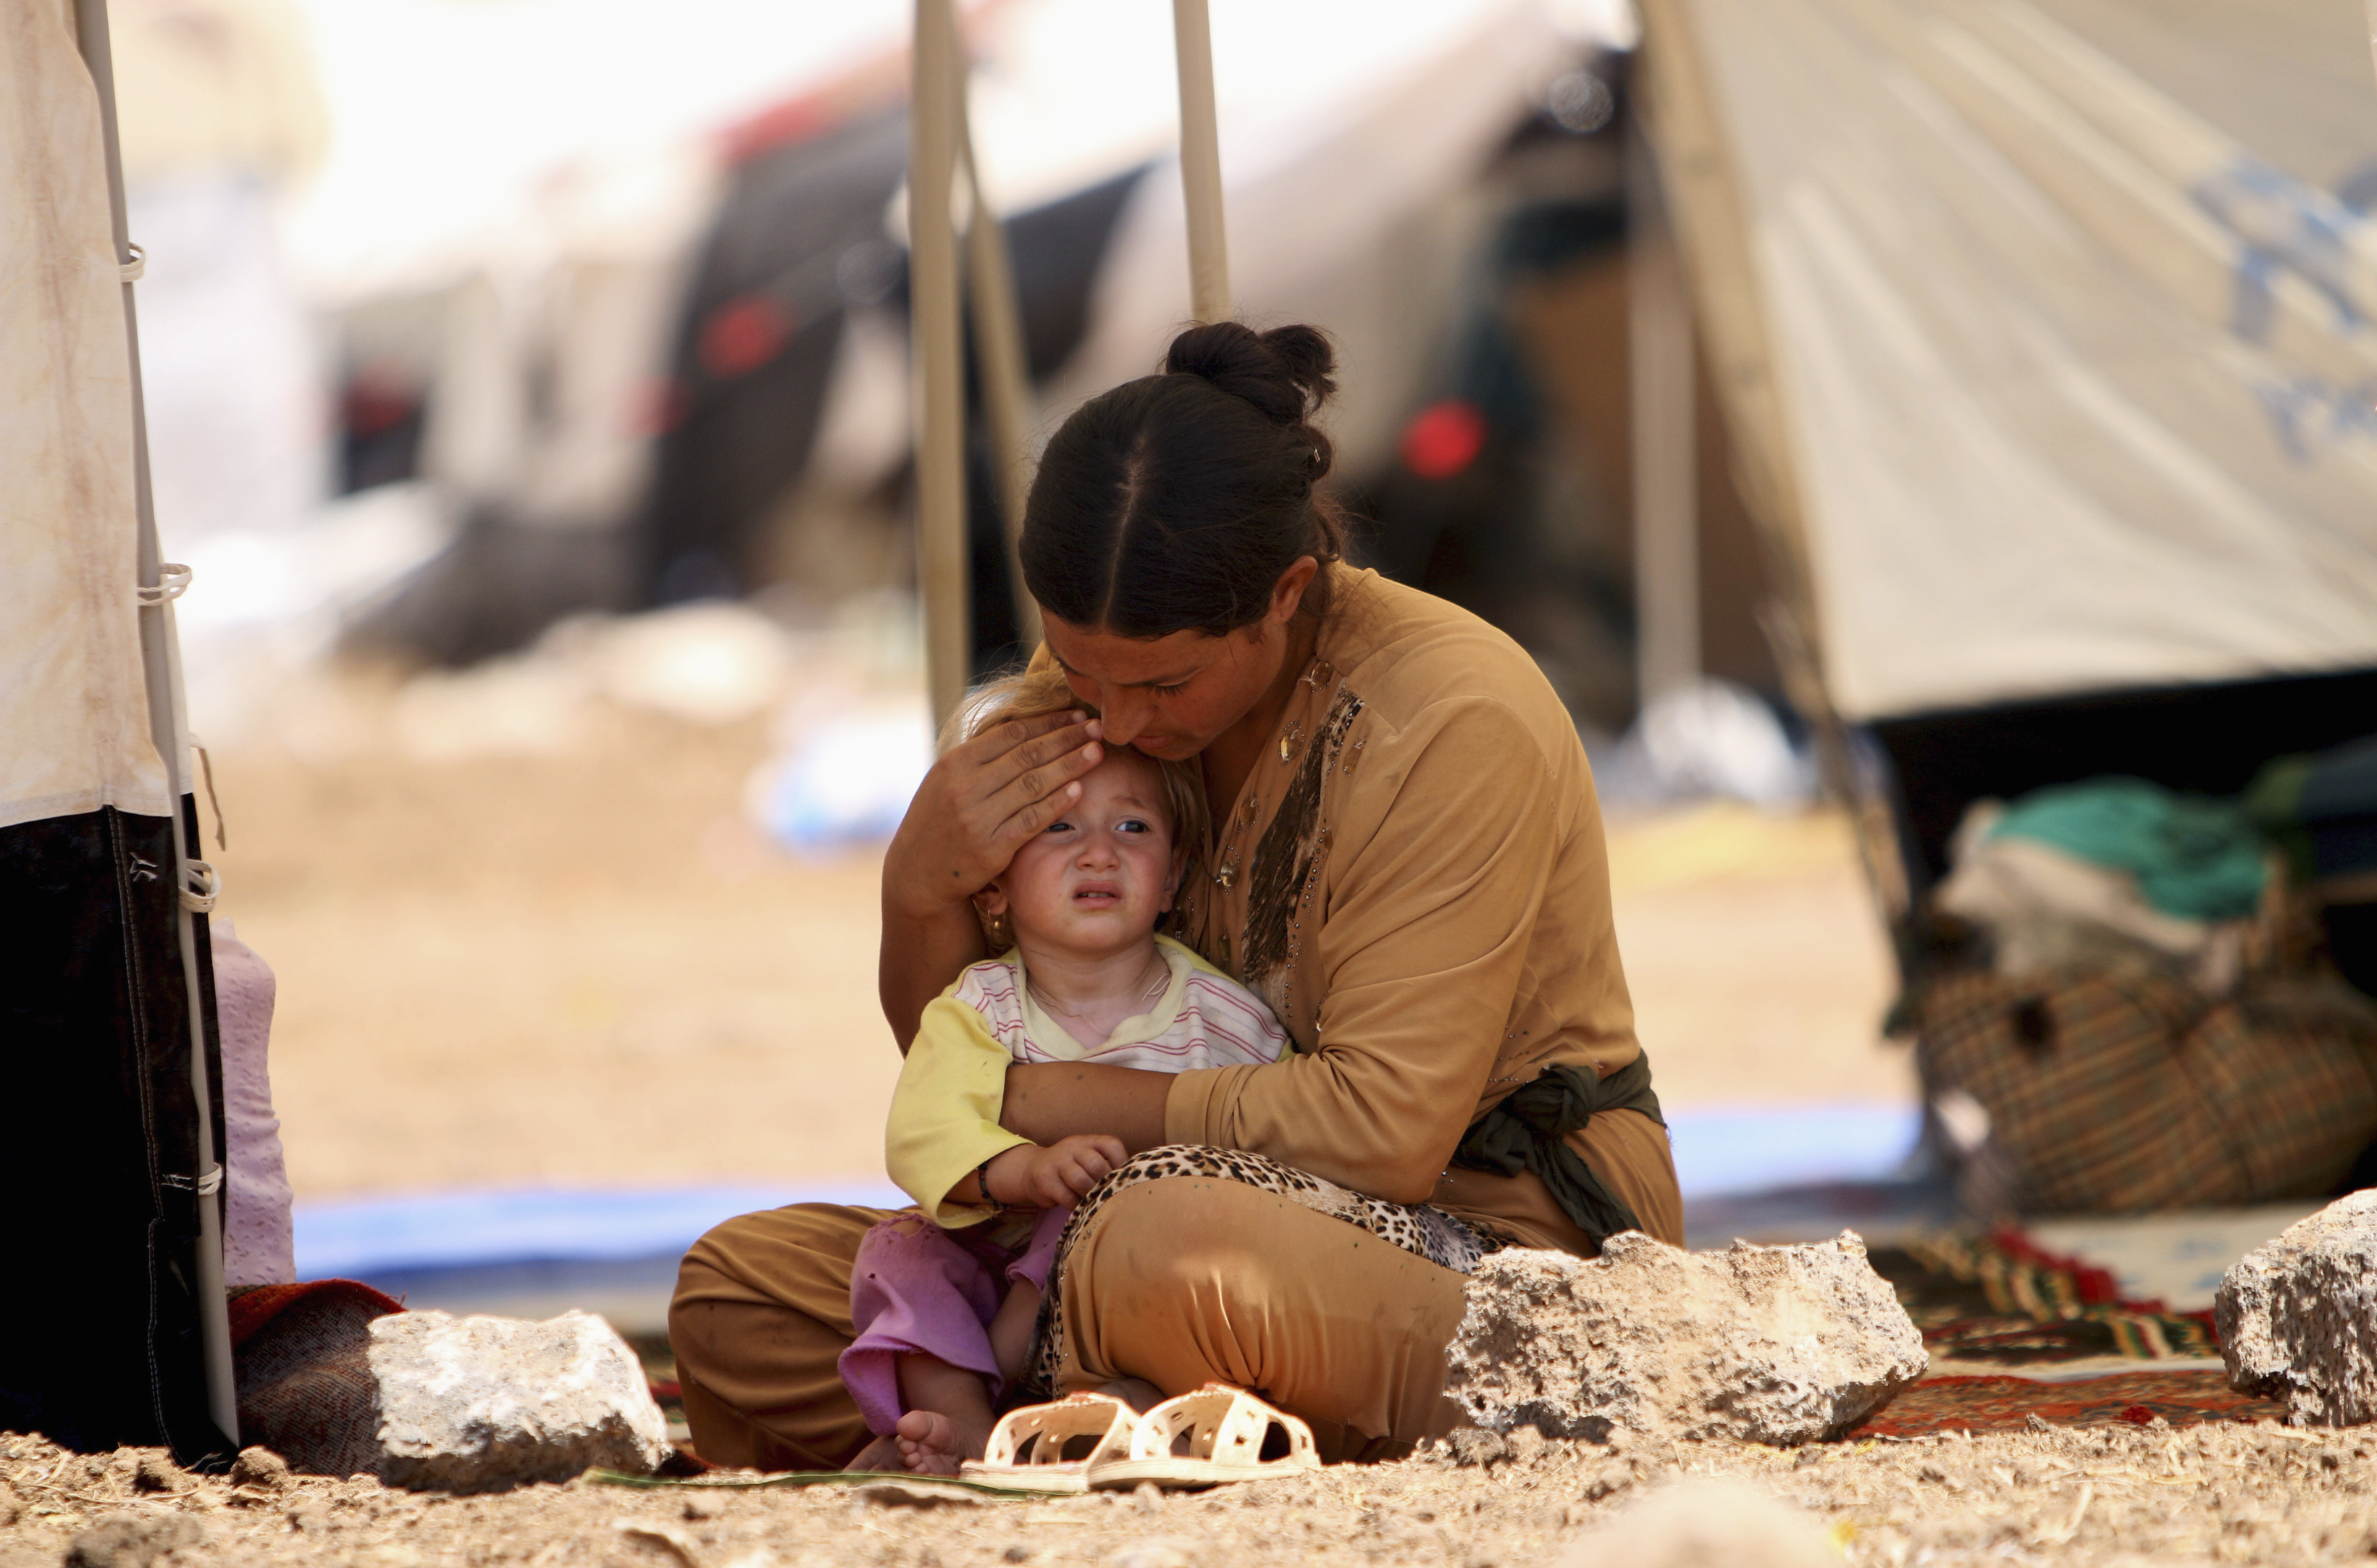 A refugee woman from the minority Yazidi sect, who fled the violence in the Iraqi town of Sinjar, sits with a child inside a tent at a refugee camp in north-eastern Syria. The Yazidis have been brutally persecuted by militants from the Islamic State, some